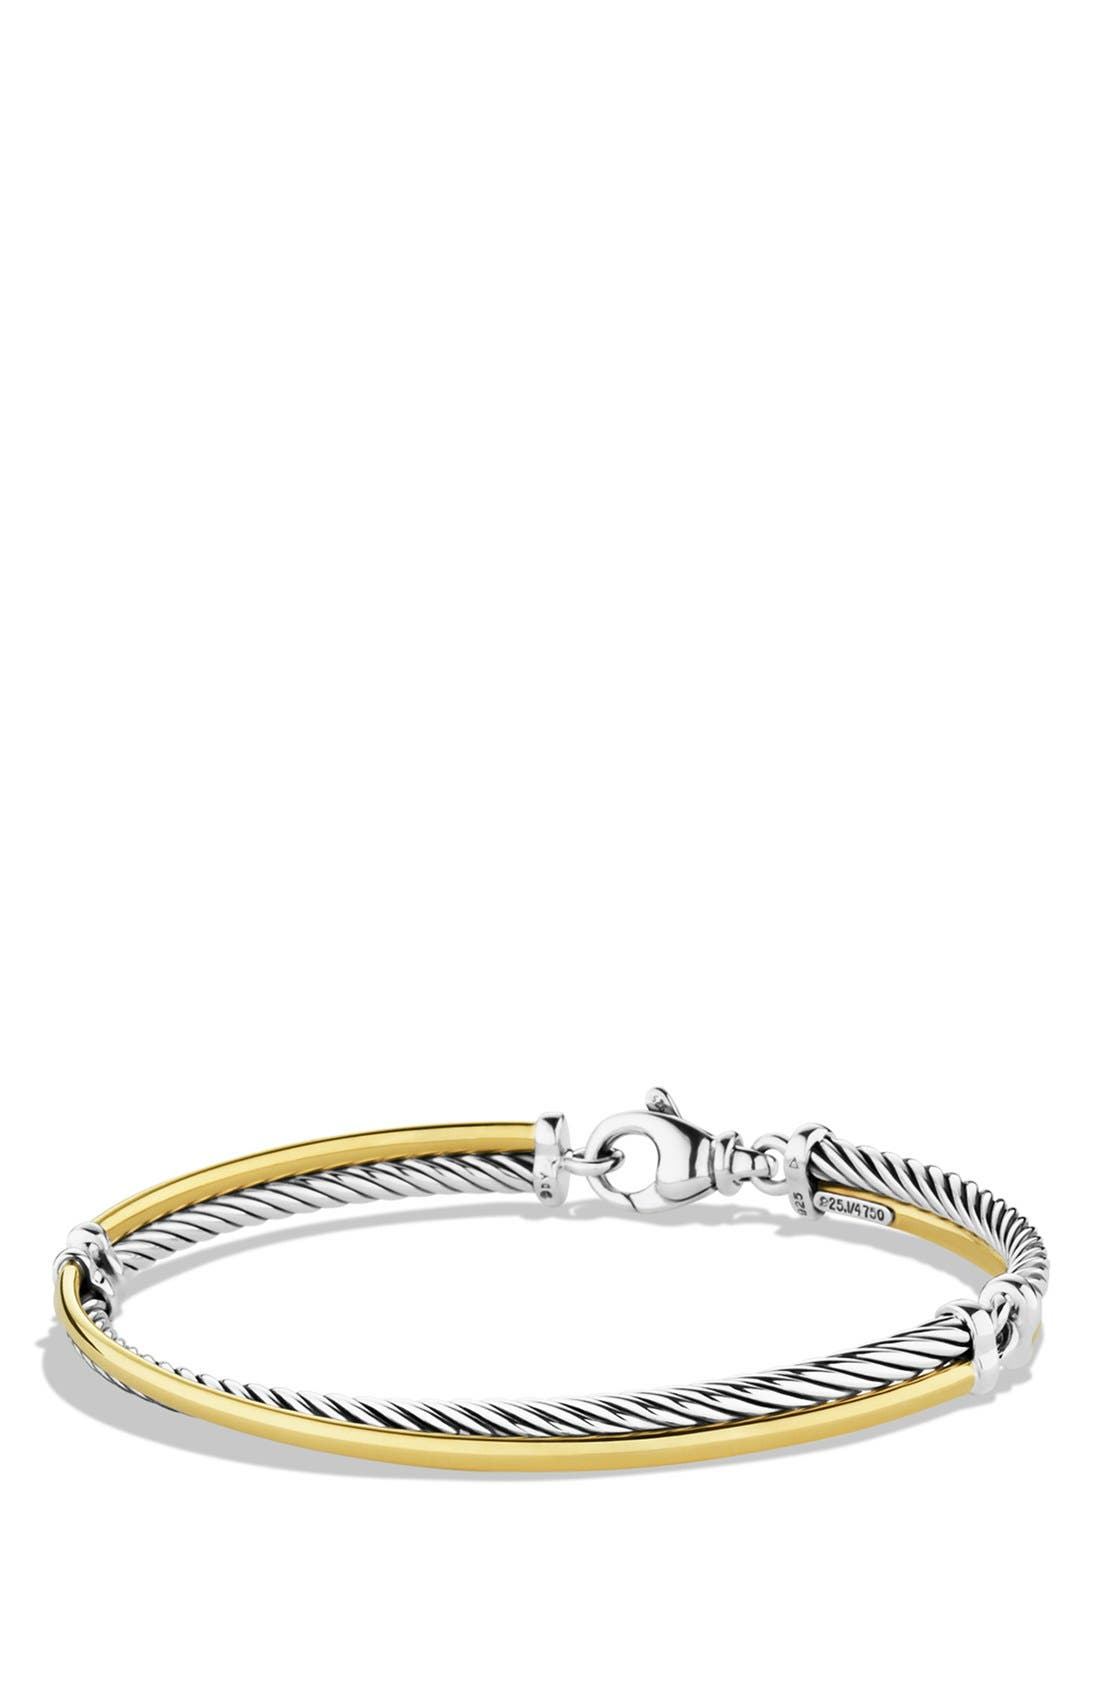 Alternate Image 1 Selected - David Yurman 'Crossover' Bracelet with Gold